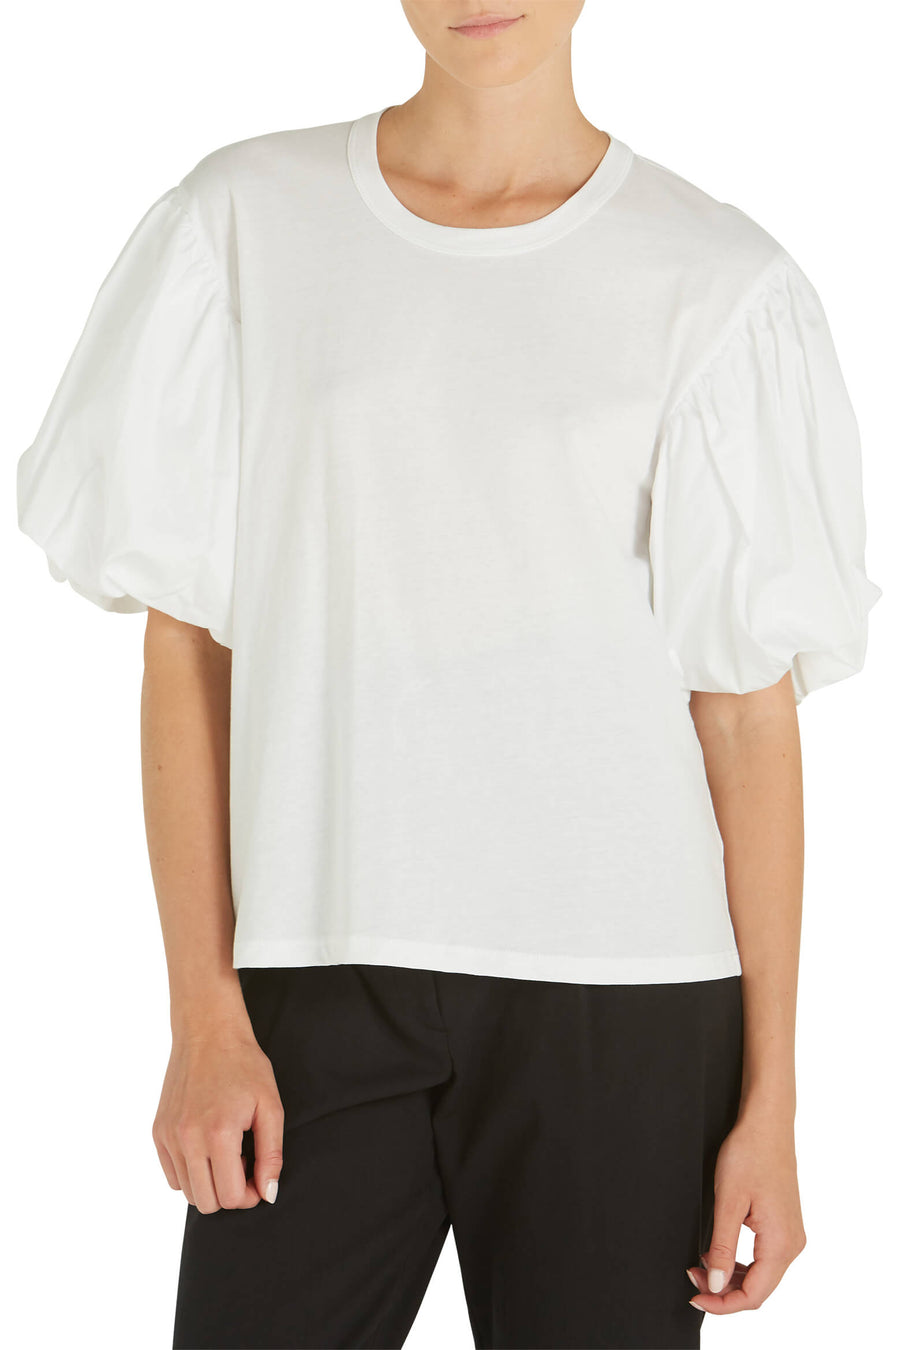 A.L.C Cassandra Tee in White from The New Trend